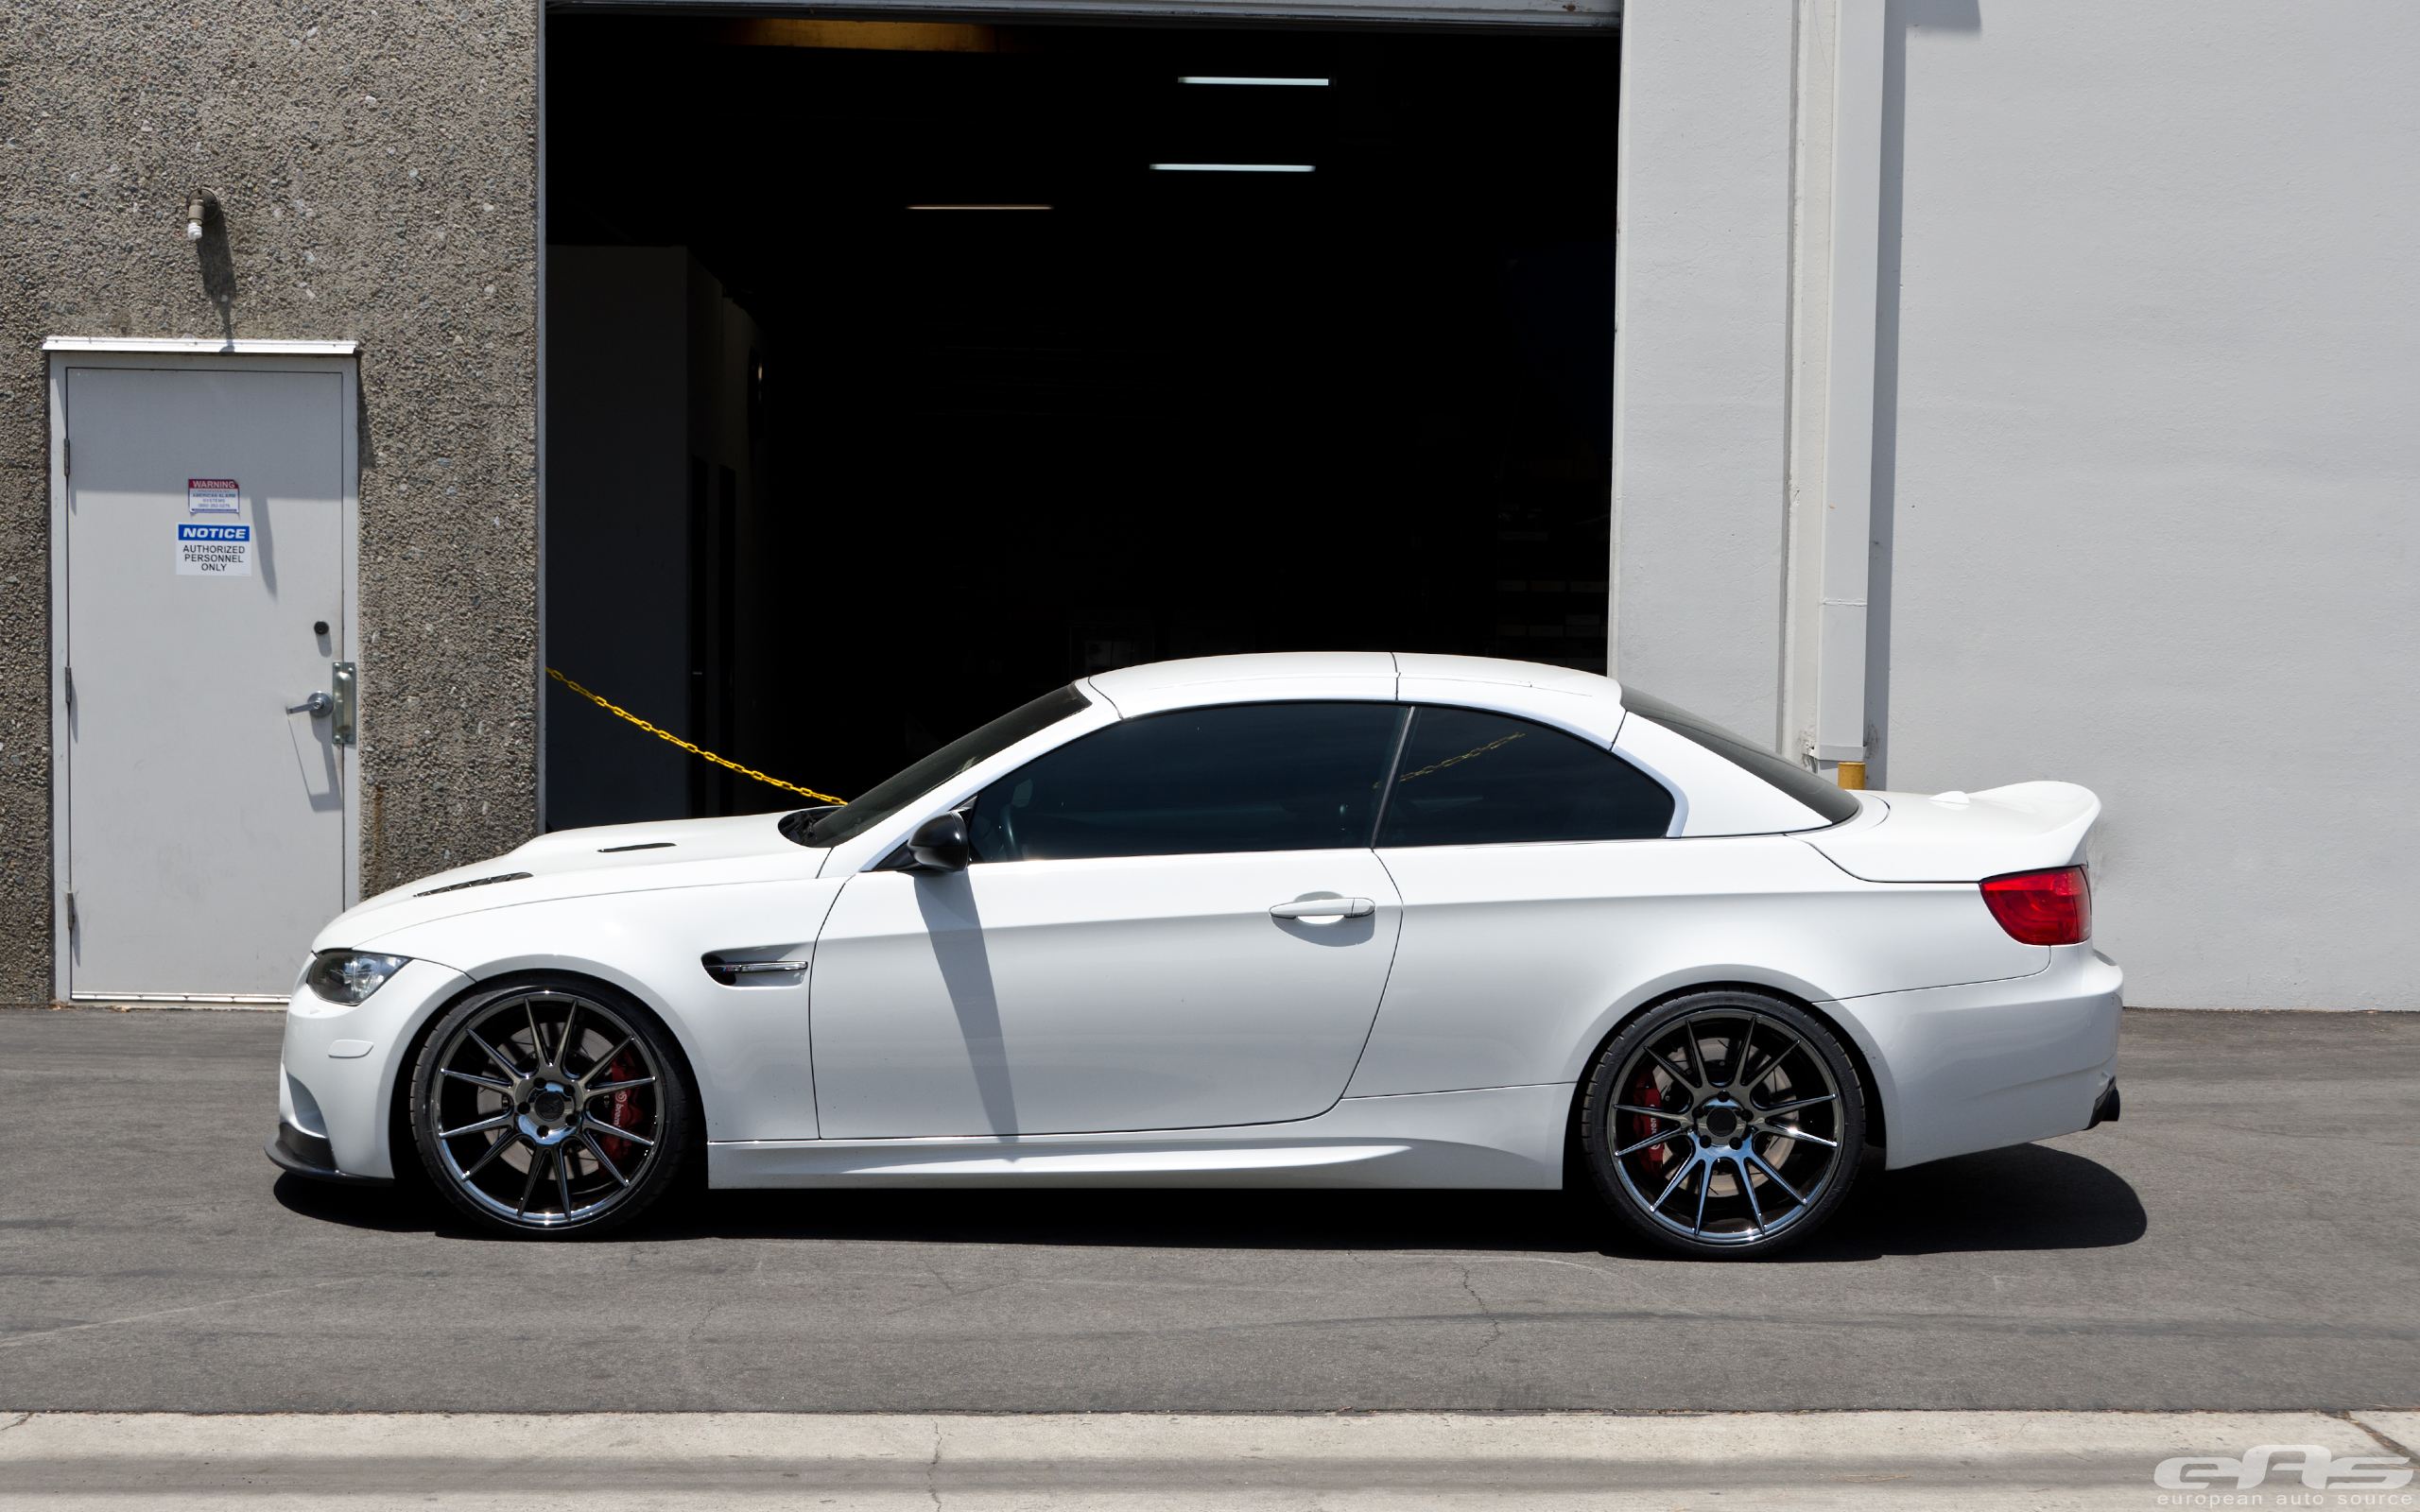 Bmw M3 Convertible >> BMW E93 M3 Convertible Gets Shiny Wheels at EAS - autoevolution